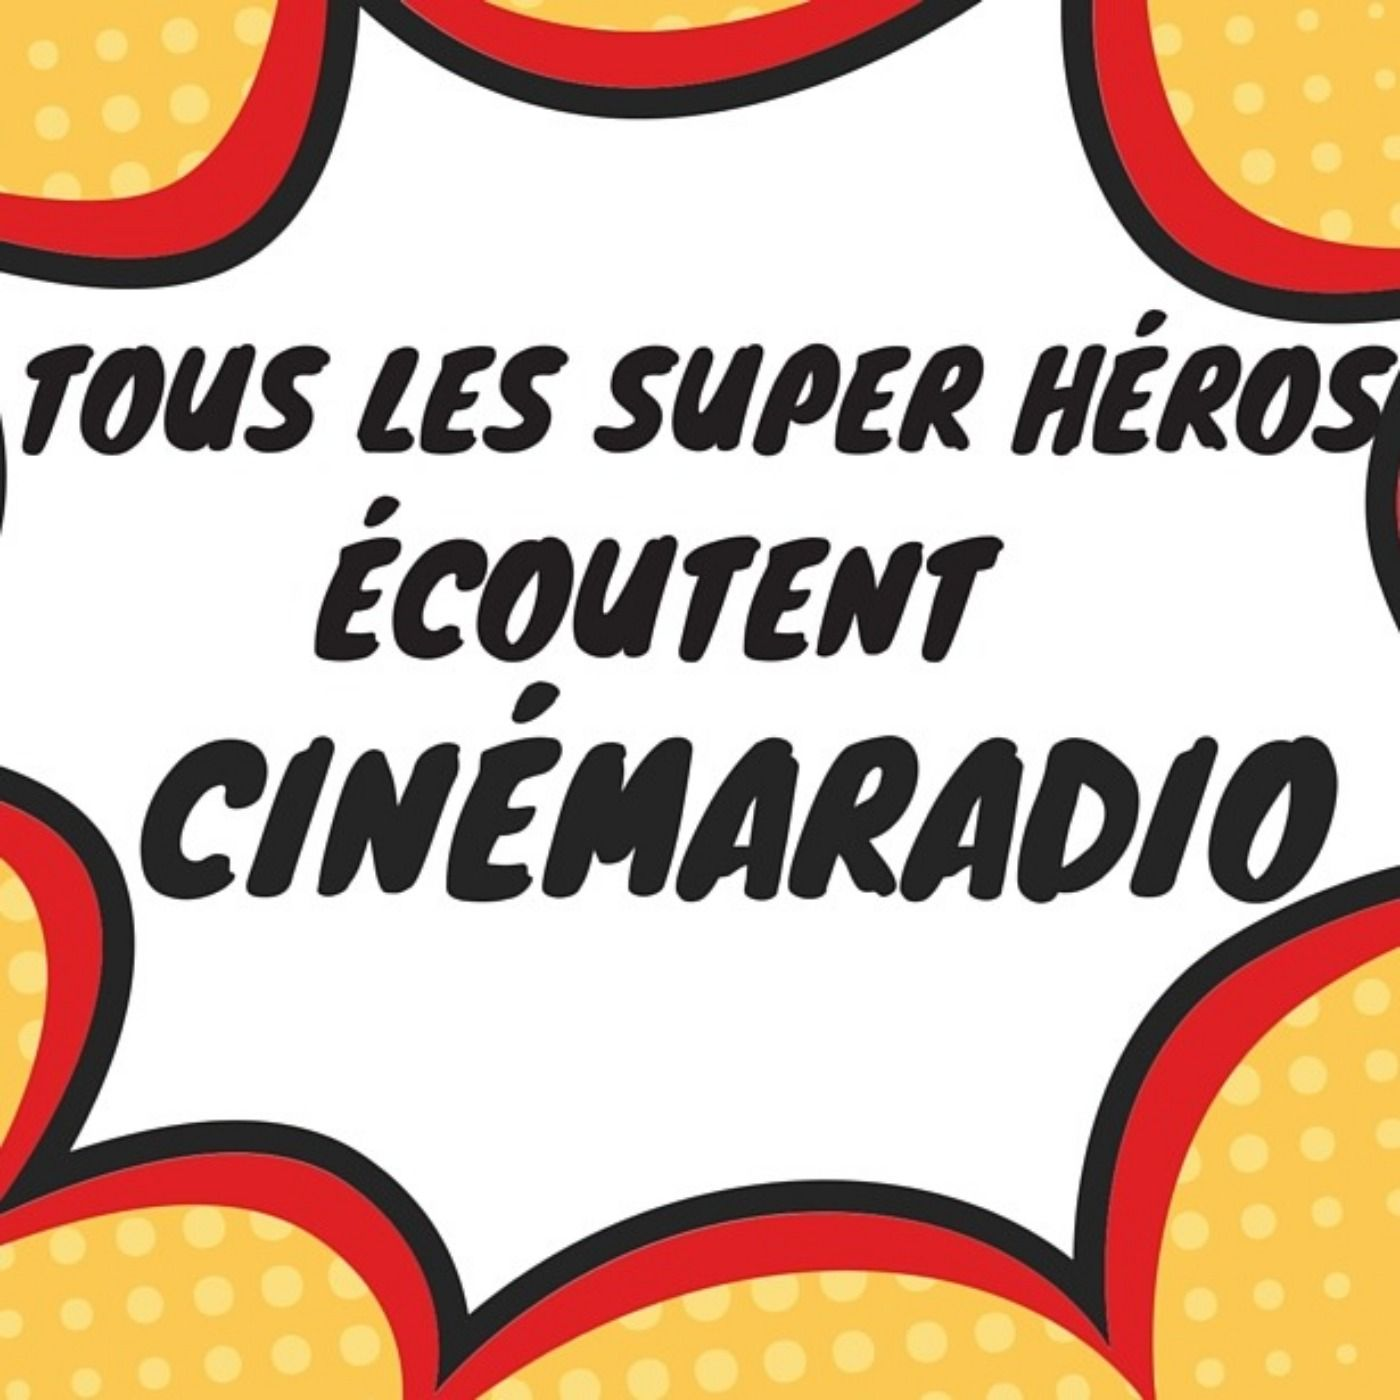 PODCAST CINEMA | Saga Marvel #3 | CRITIQUE DU FILM L'INCROYABLE HULK | CinéMaRadio